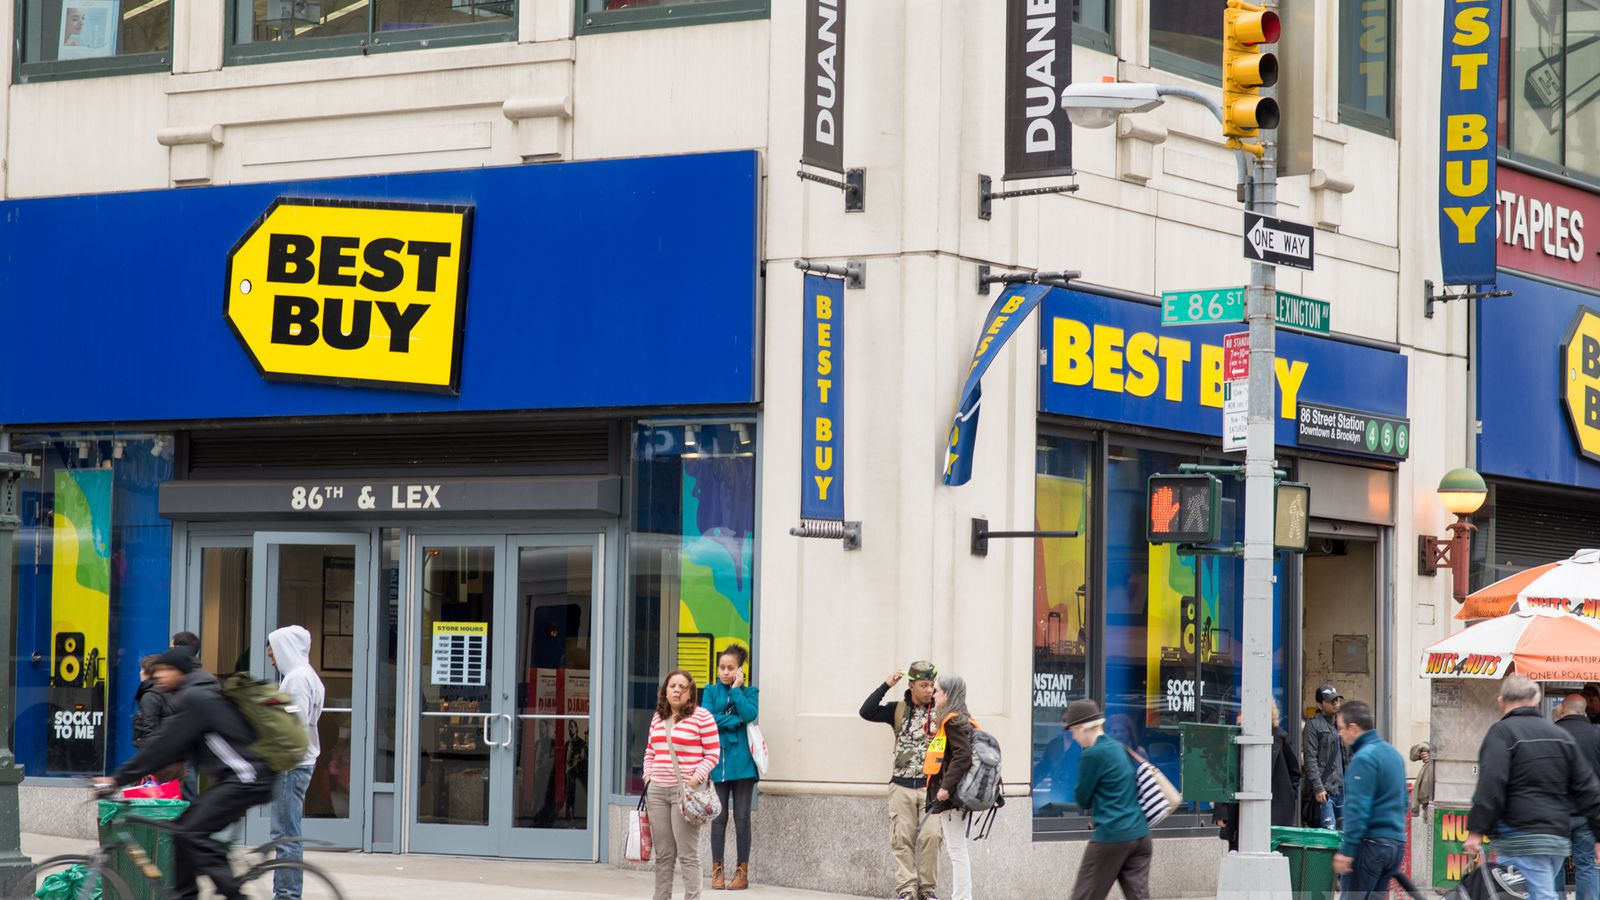 At Best Buy Union Square, we'll keep your devices running smoothly with the full range of expert services from Geek Squad®. We're here to help, so visit us at 52 E 14th St in New York, NY to find the perfect new camera, laptop, Blu-ray player, smart lighting or activity tracker dirtyinstalzonevx6.gaon: 52 E 14th St, New York, , NY.